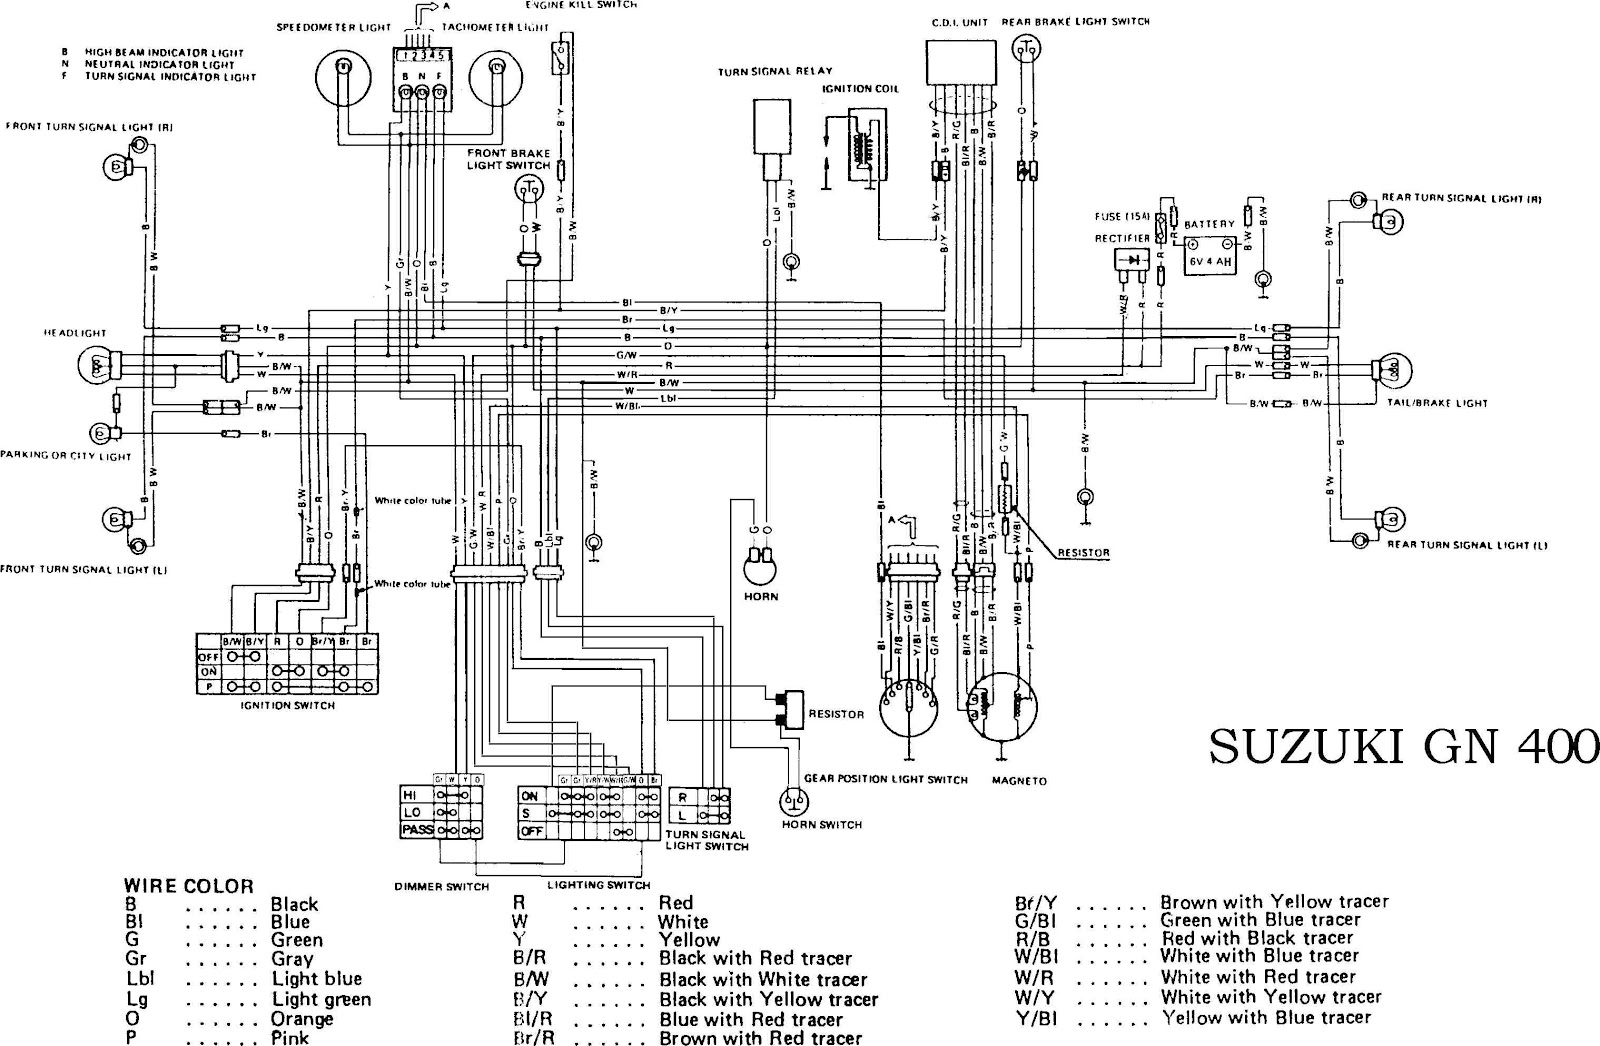 suzuki xl7 wiring diagram suzuki gn400 motorcycle complete electrical wiring diagram ... #9